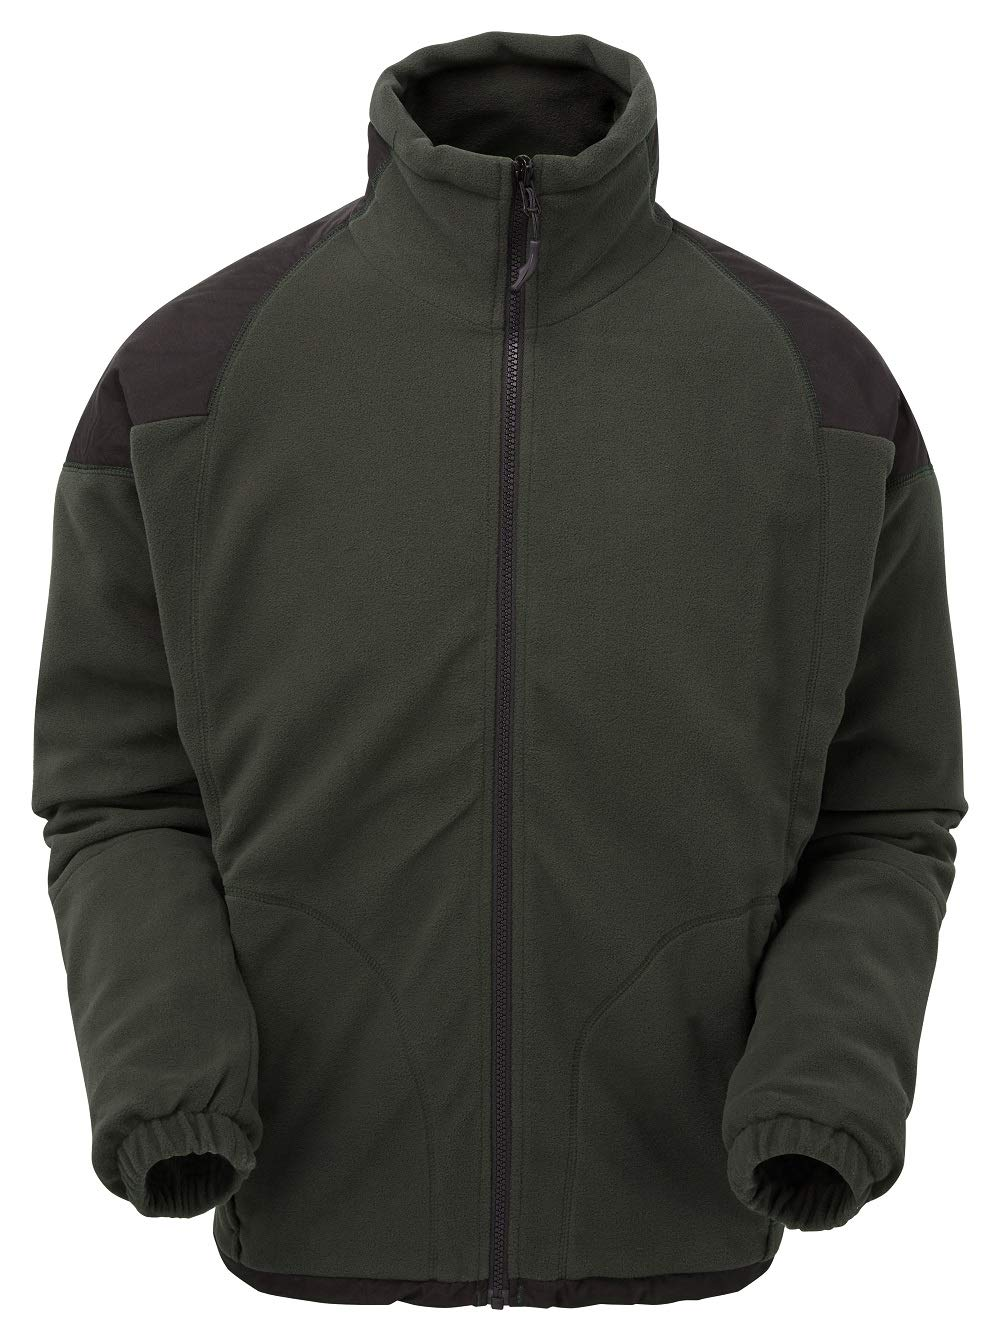 Keela Genesis Fleece (Moss)